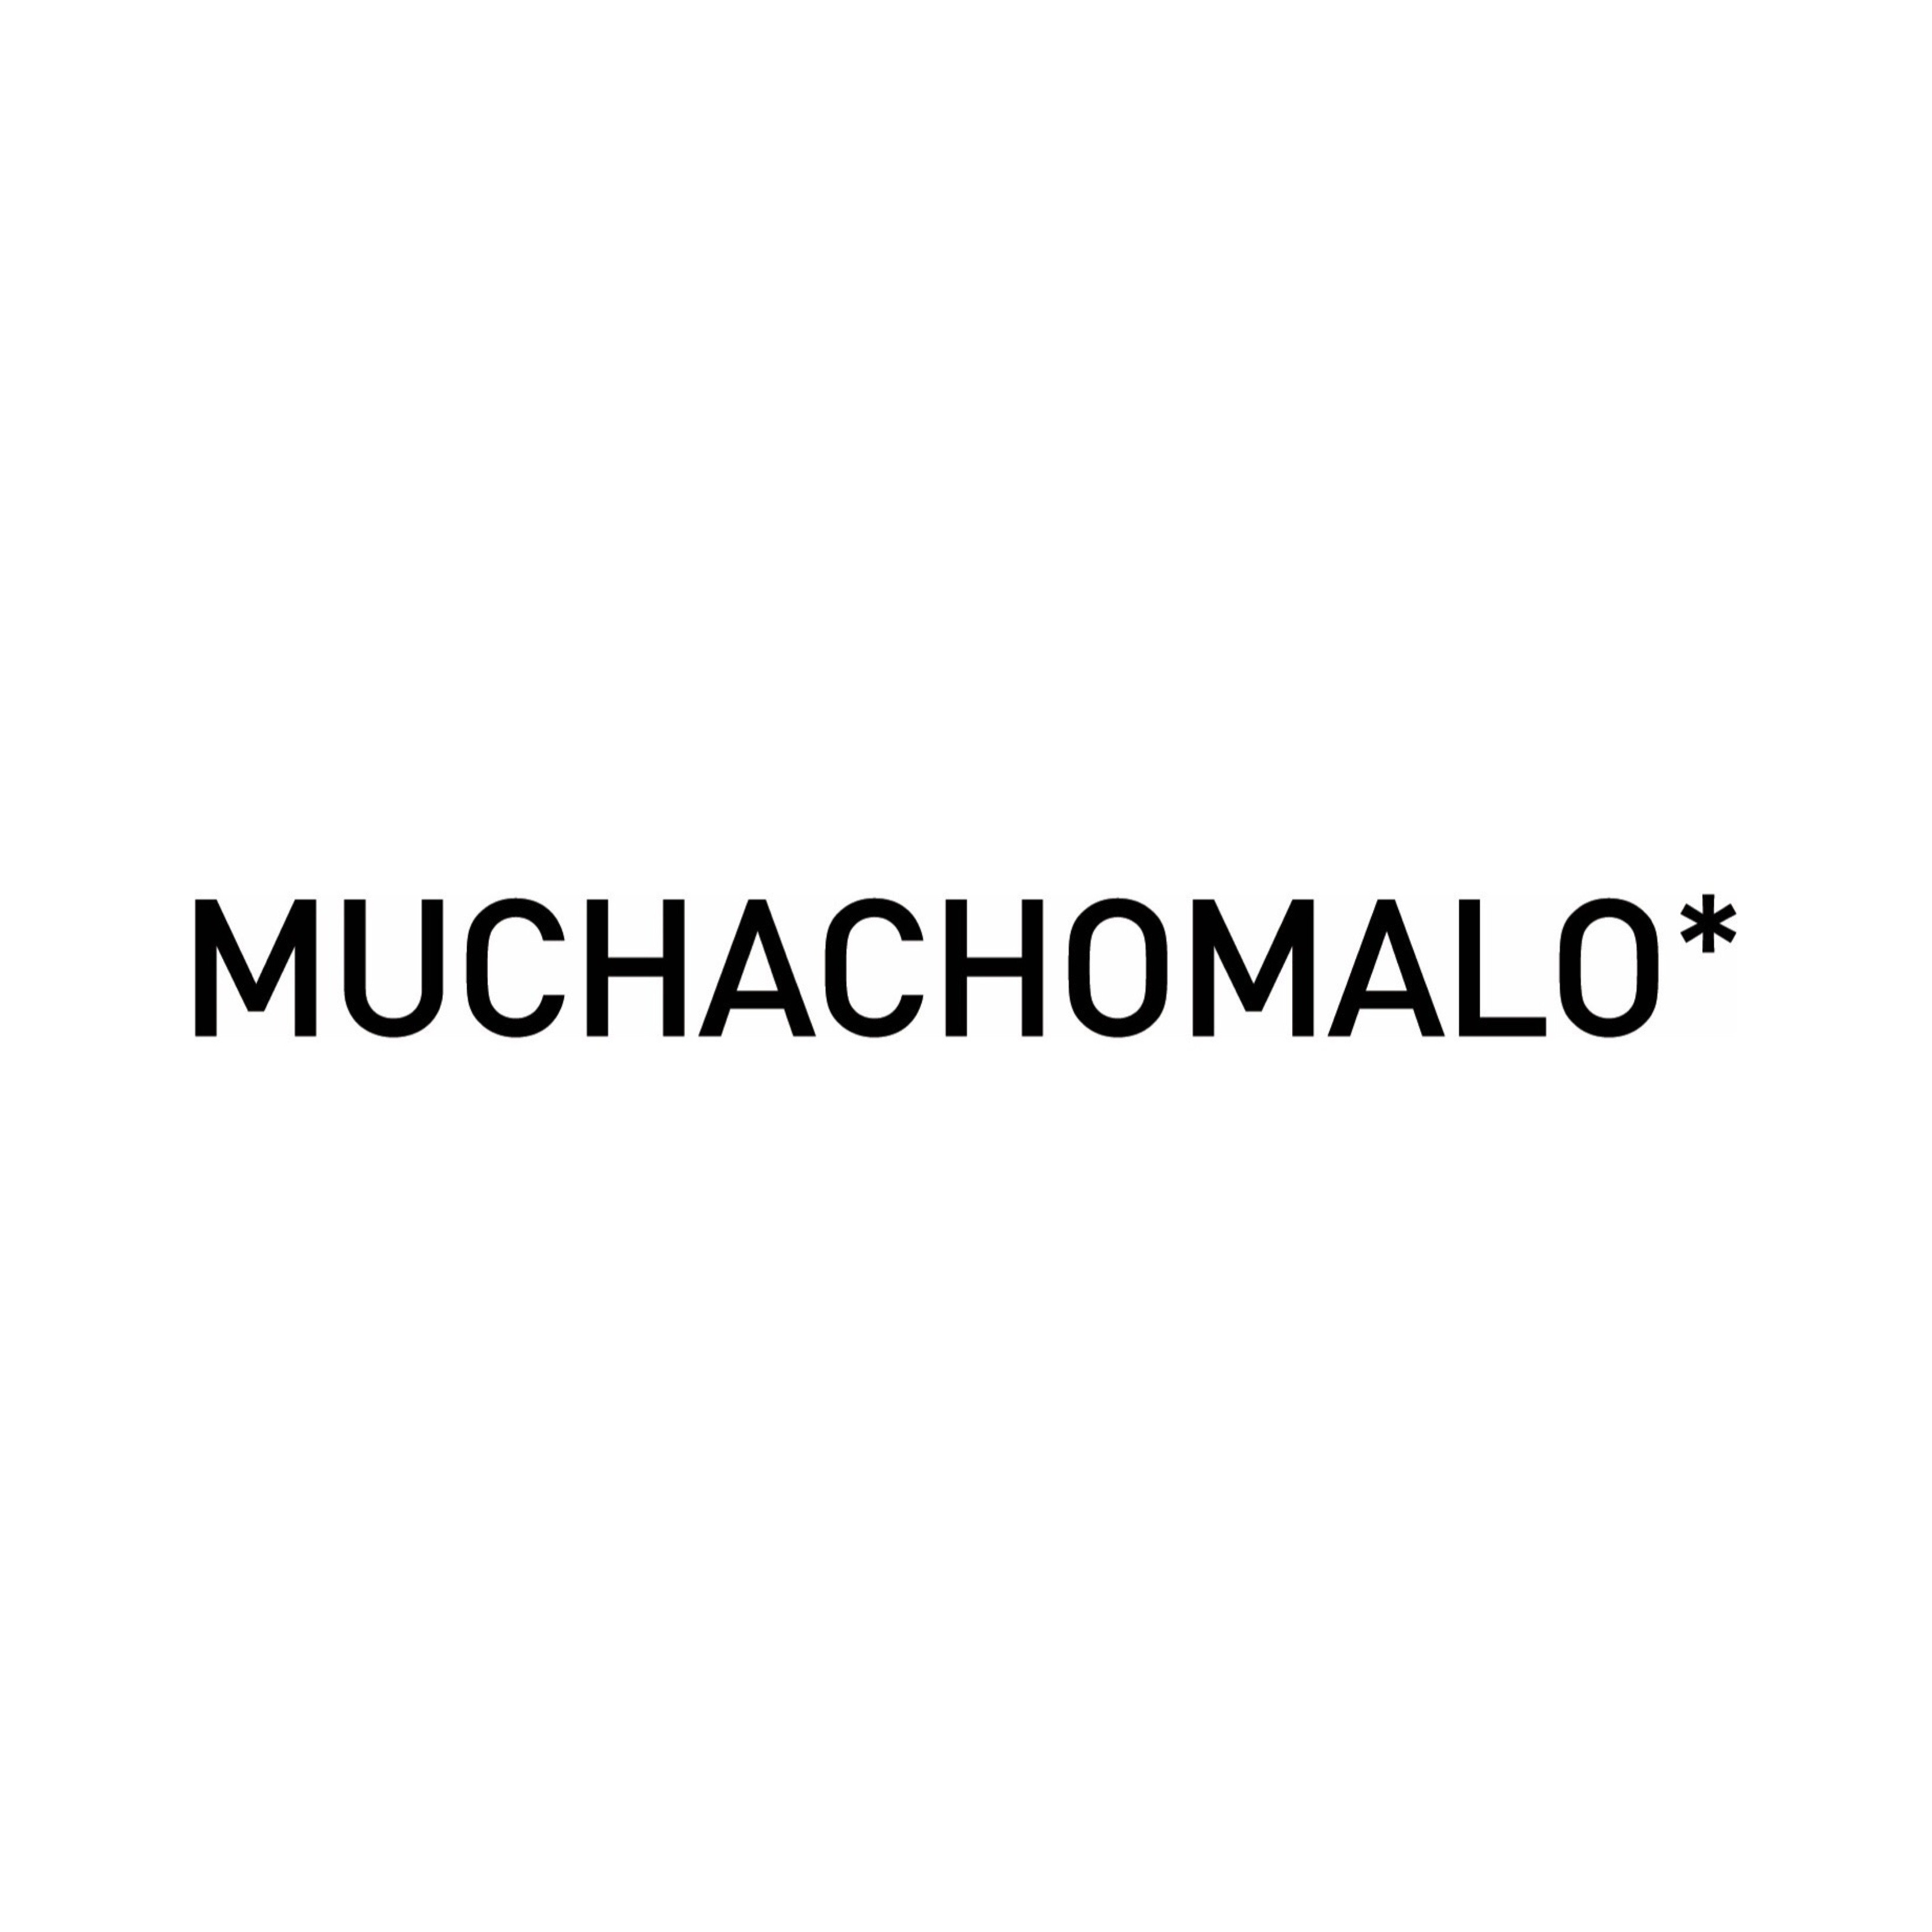 MUCHACHOMALO* Japan official online storeにつきまして